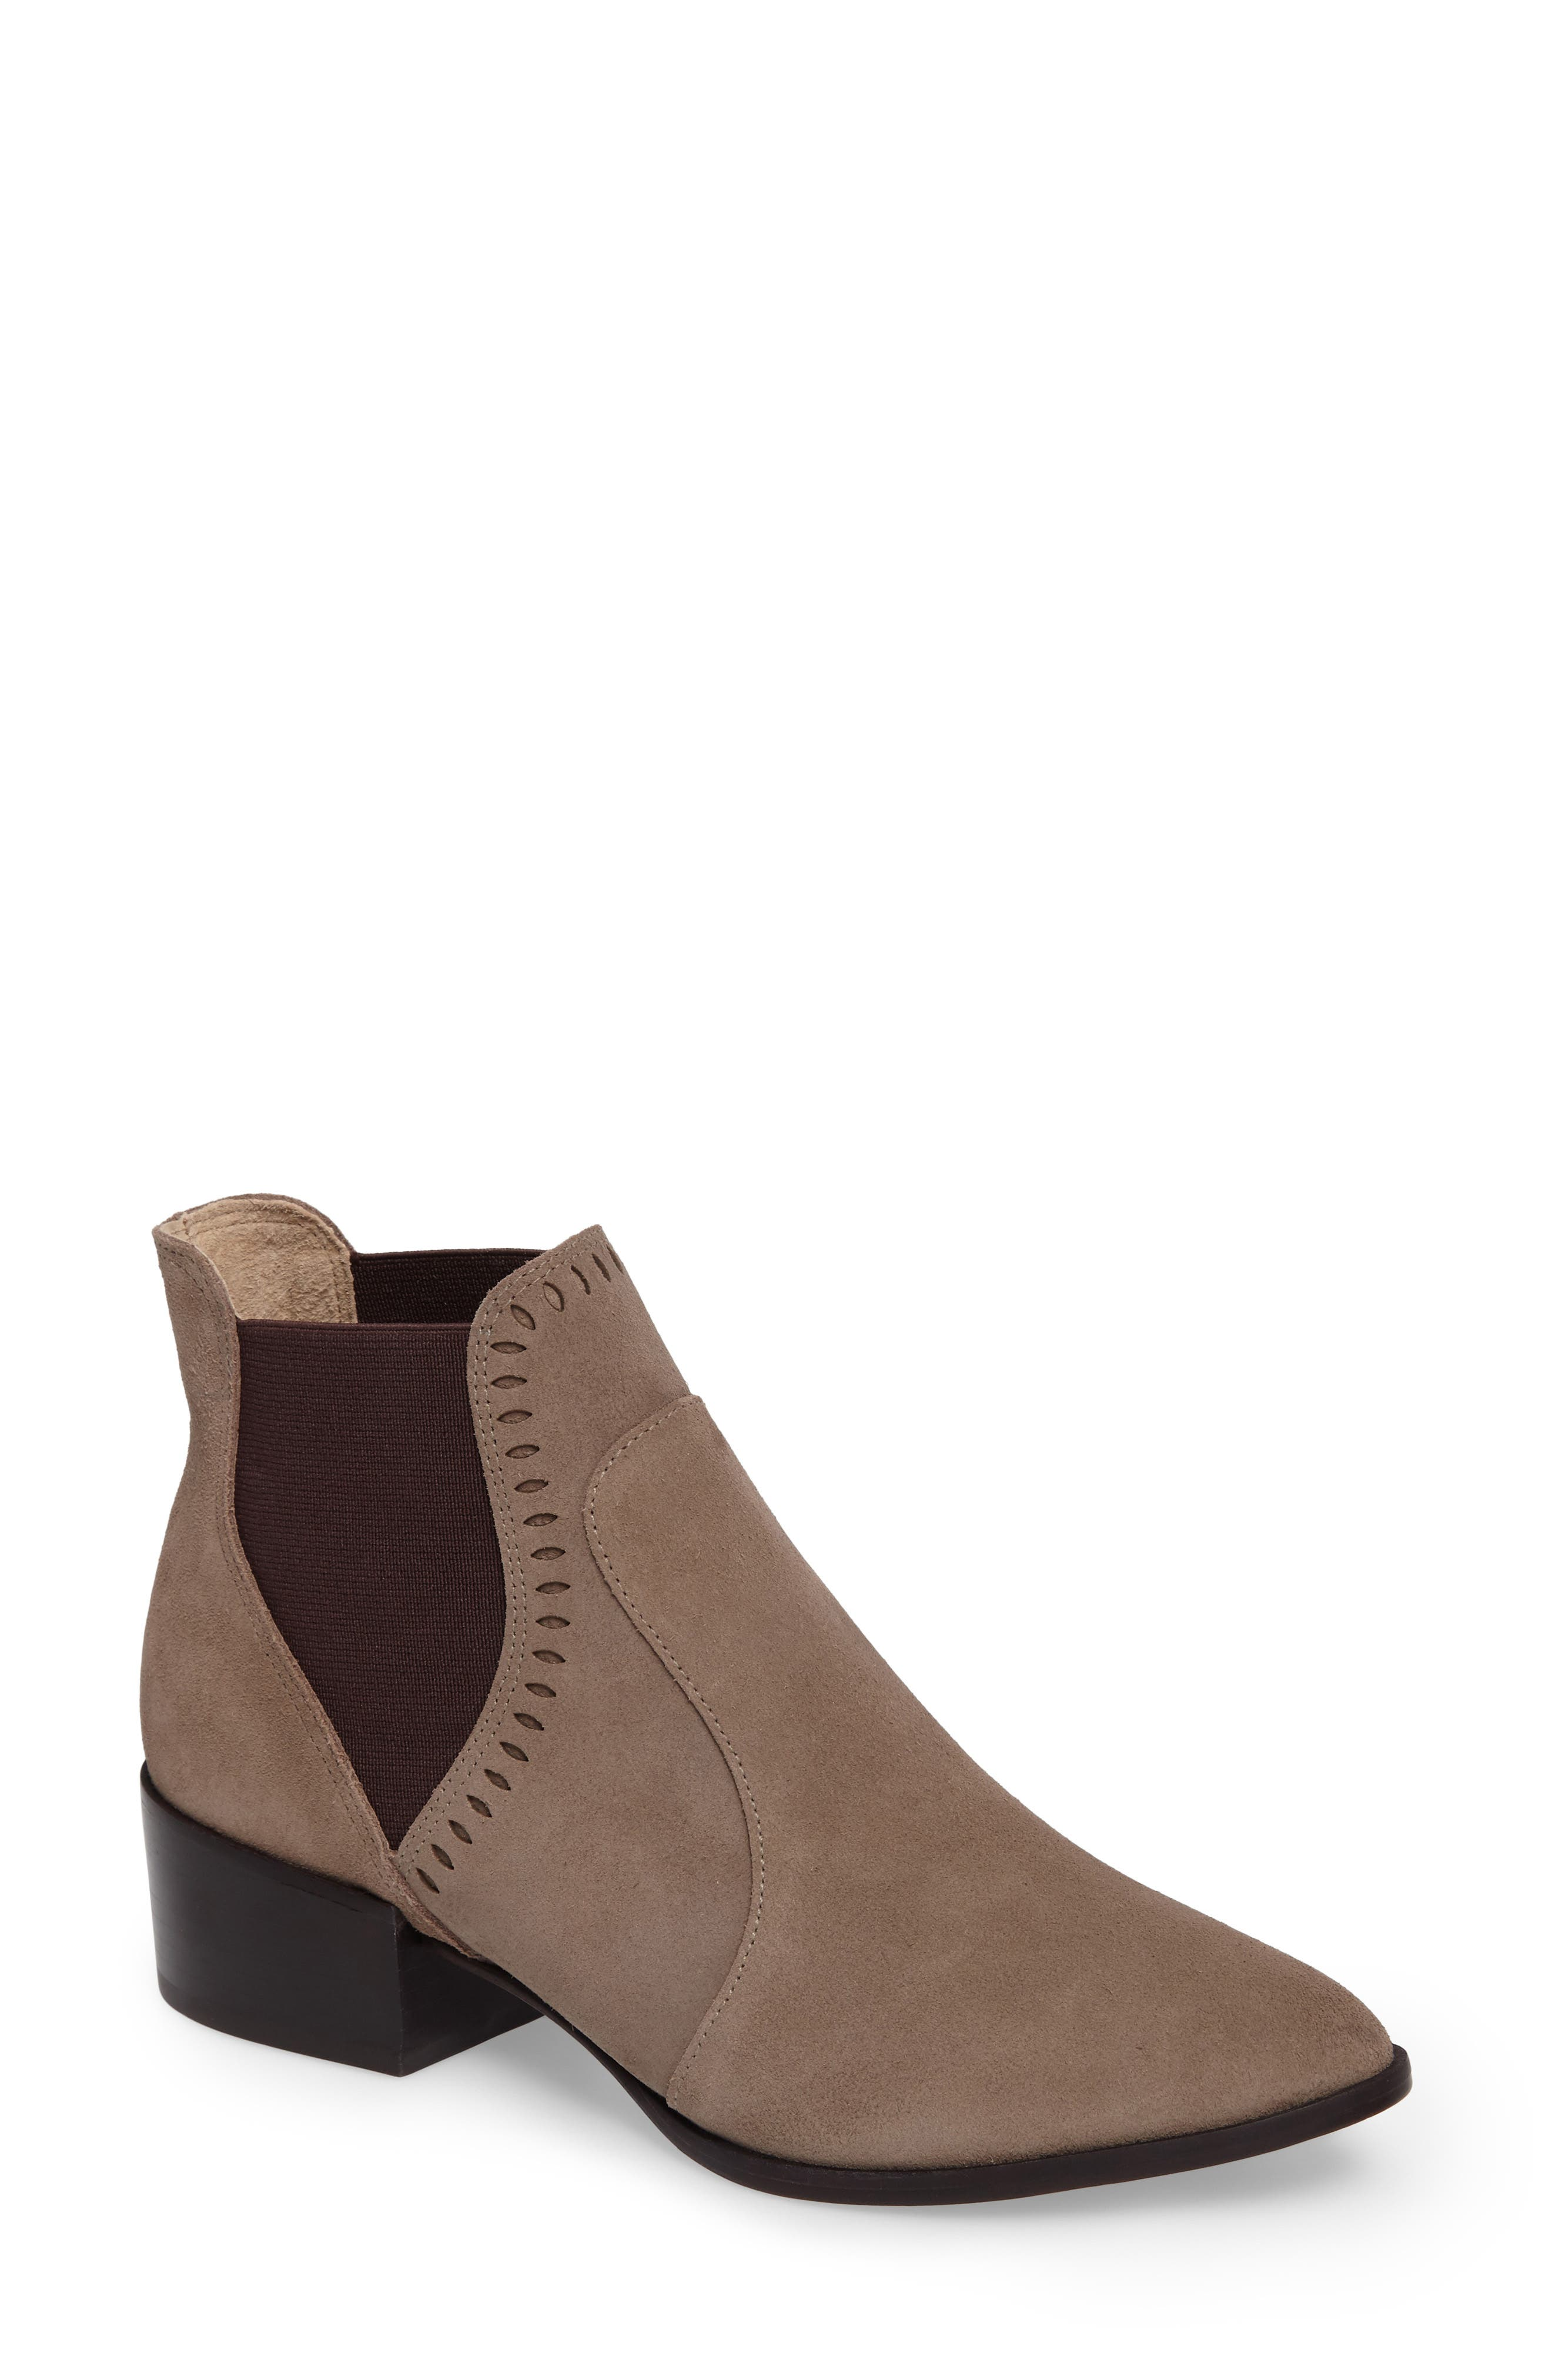 Alternate Image 1 Selected - Klub Nico Zafira Chelsea Boot (Women)